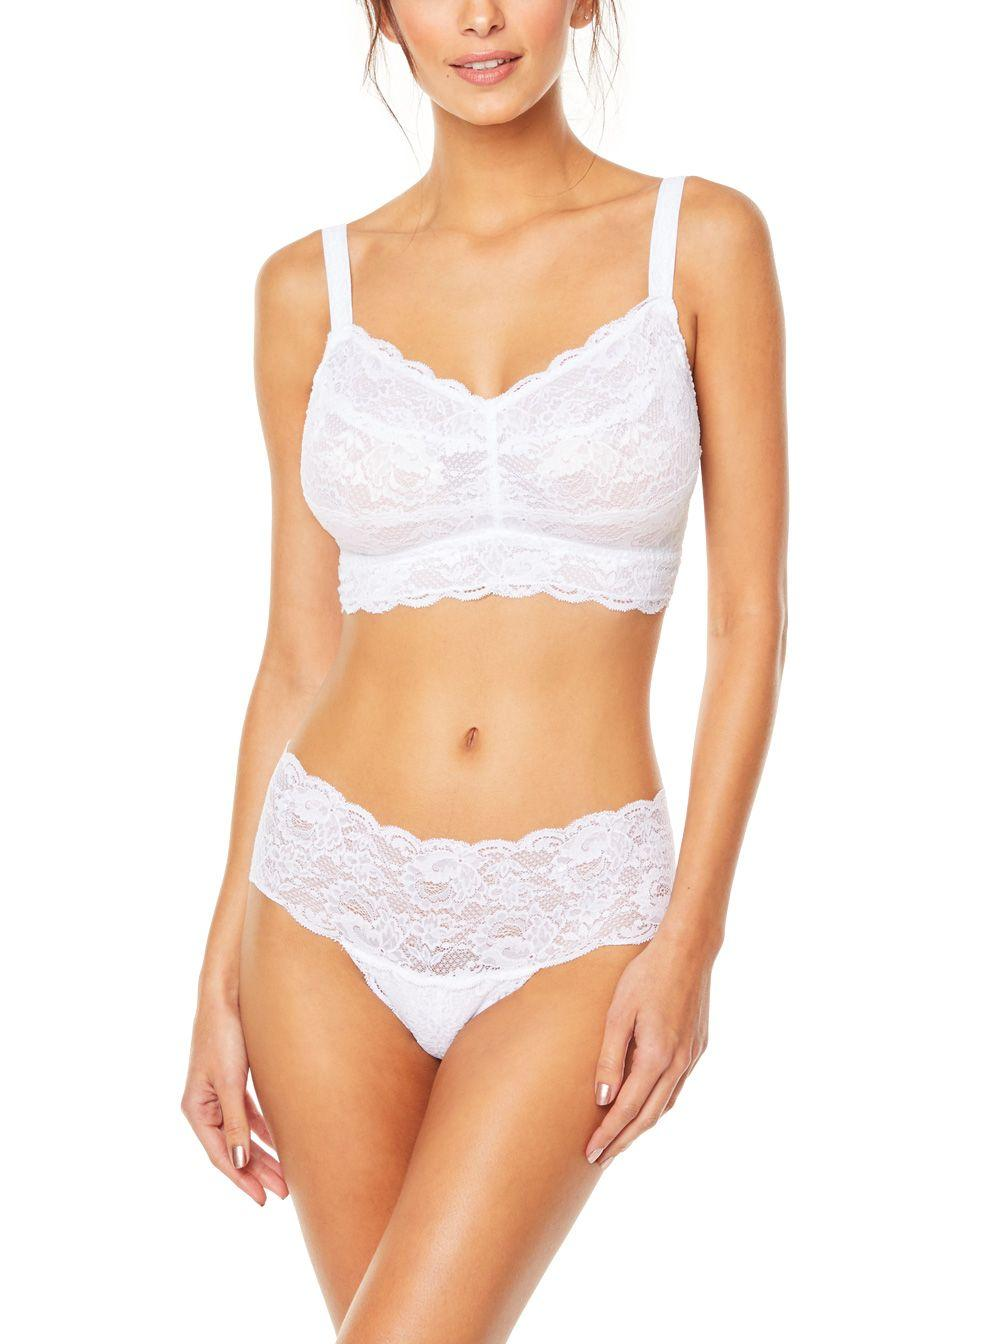 67755efb4c316 Lyst - Cosabella Never Say Never Curvy Sweetie Bralette